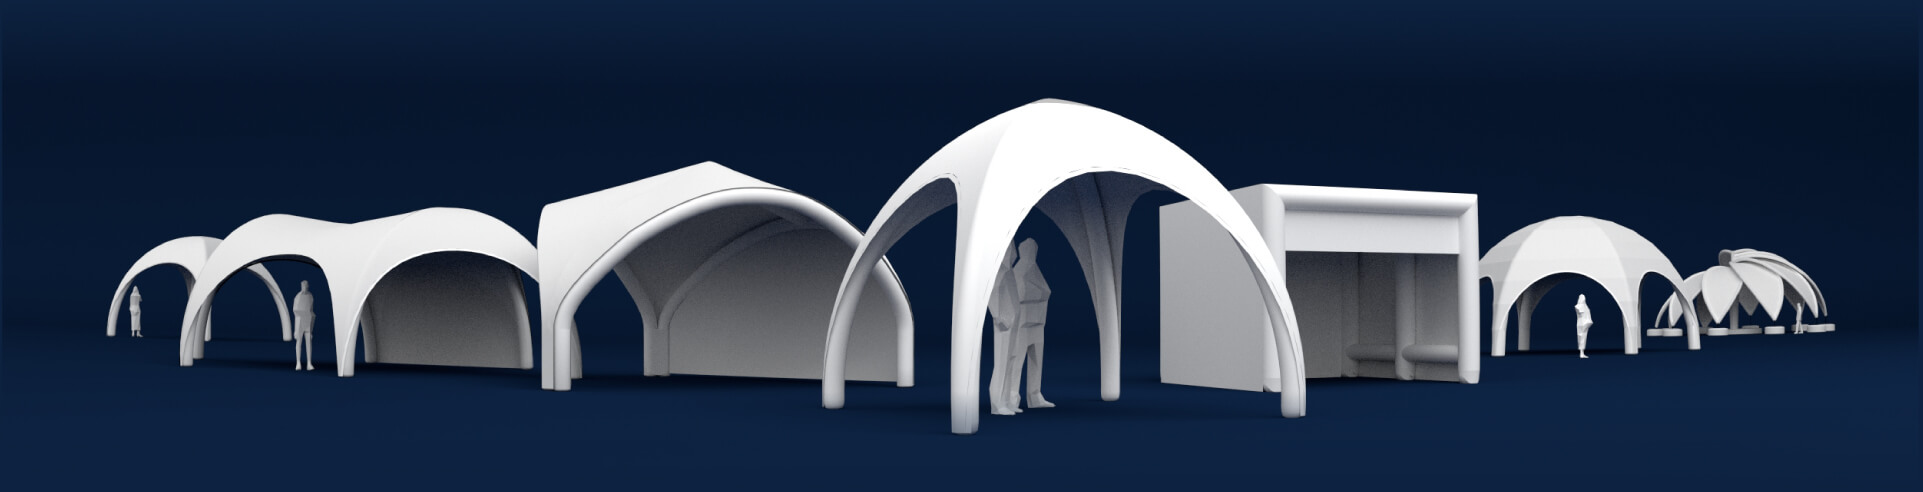 THE WIDEST RANGE OF INFLATABLE EVENT TENTS